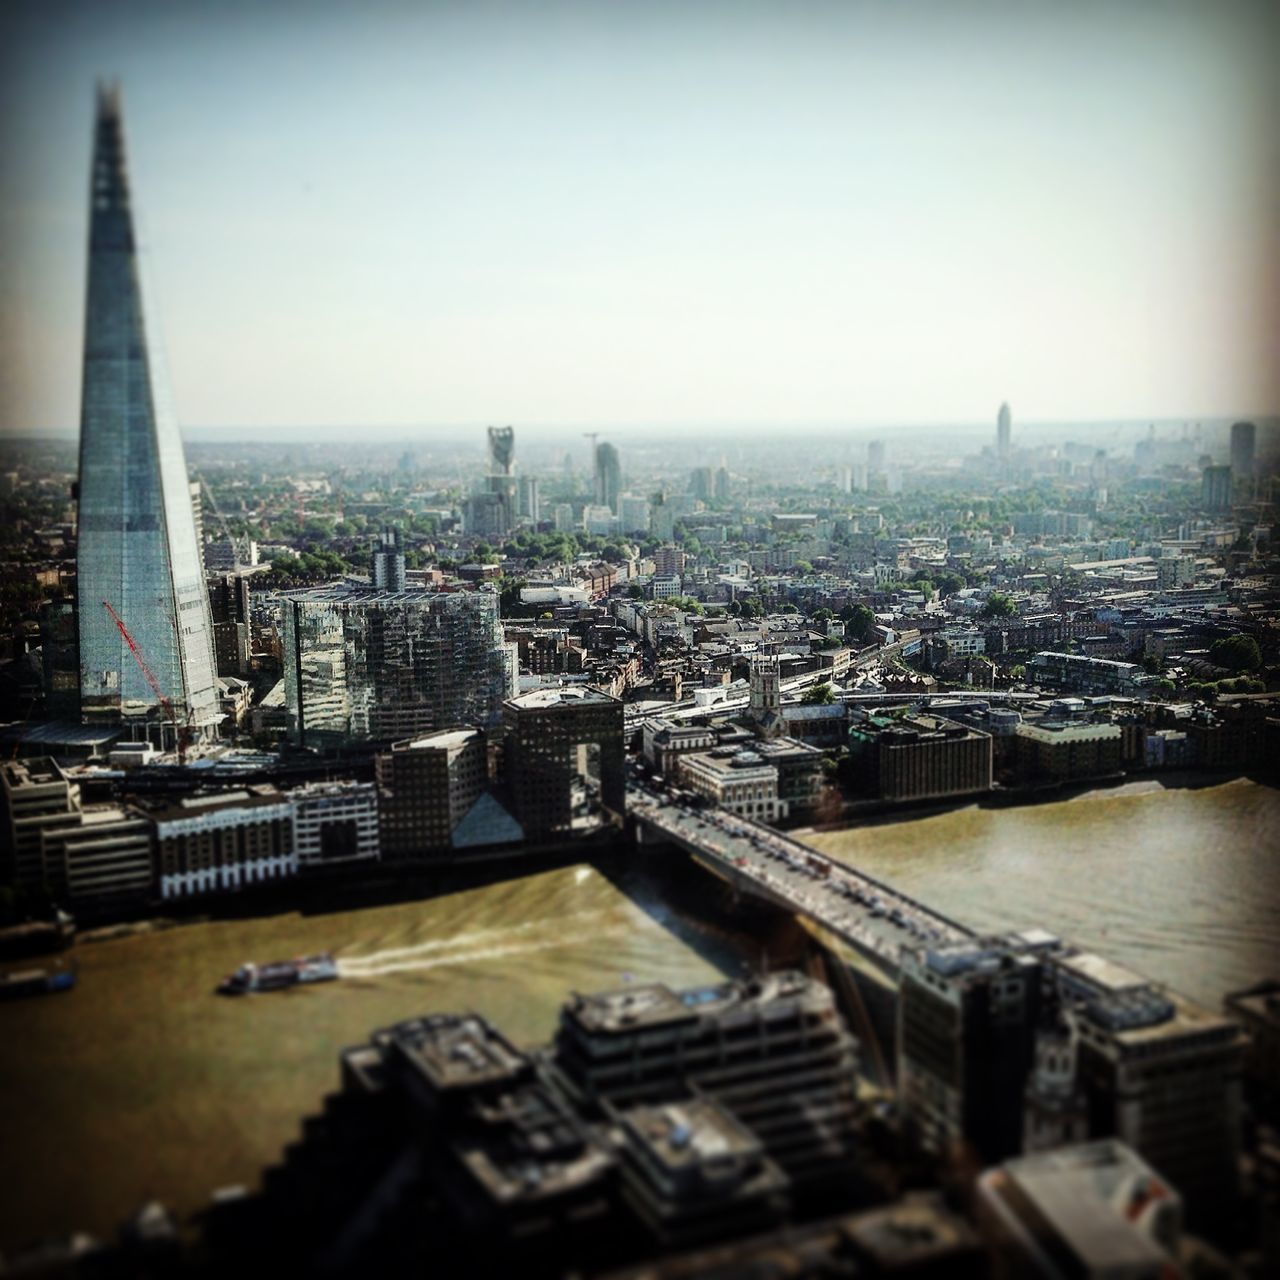 architecture, cityscape, city, building exterior, built structure, crowded, skyscraper, travel destinations, tower, development, high angle view, skyline, city life, clear sky, day, river, outdoors, wide, tilt-shift, tall, modern, sky, urban skyline